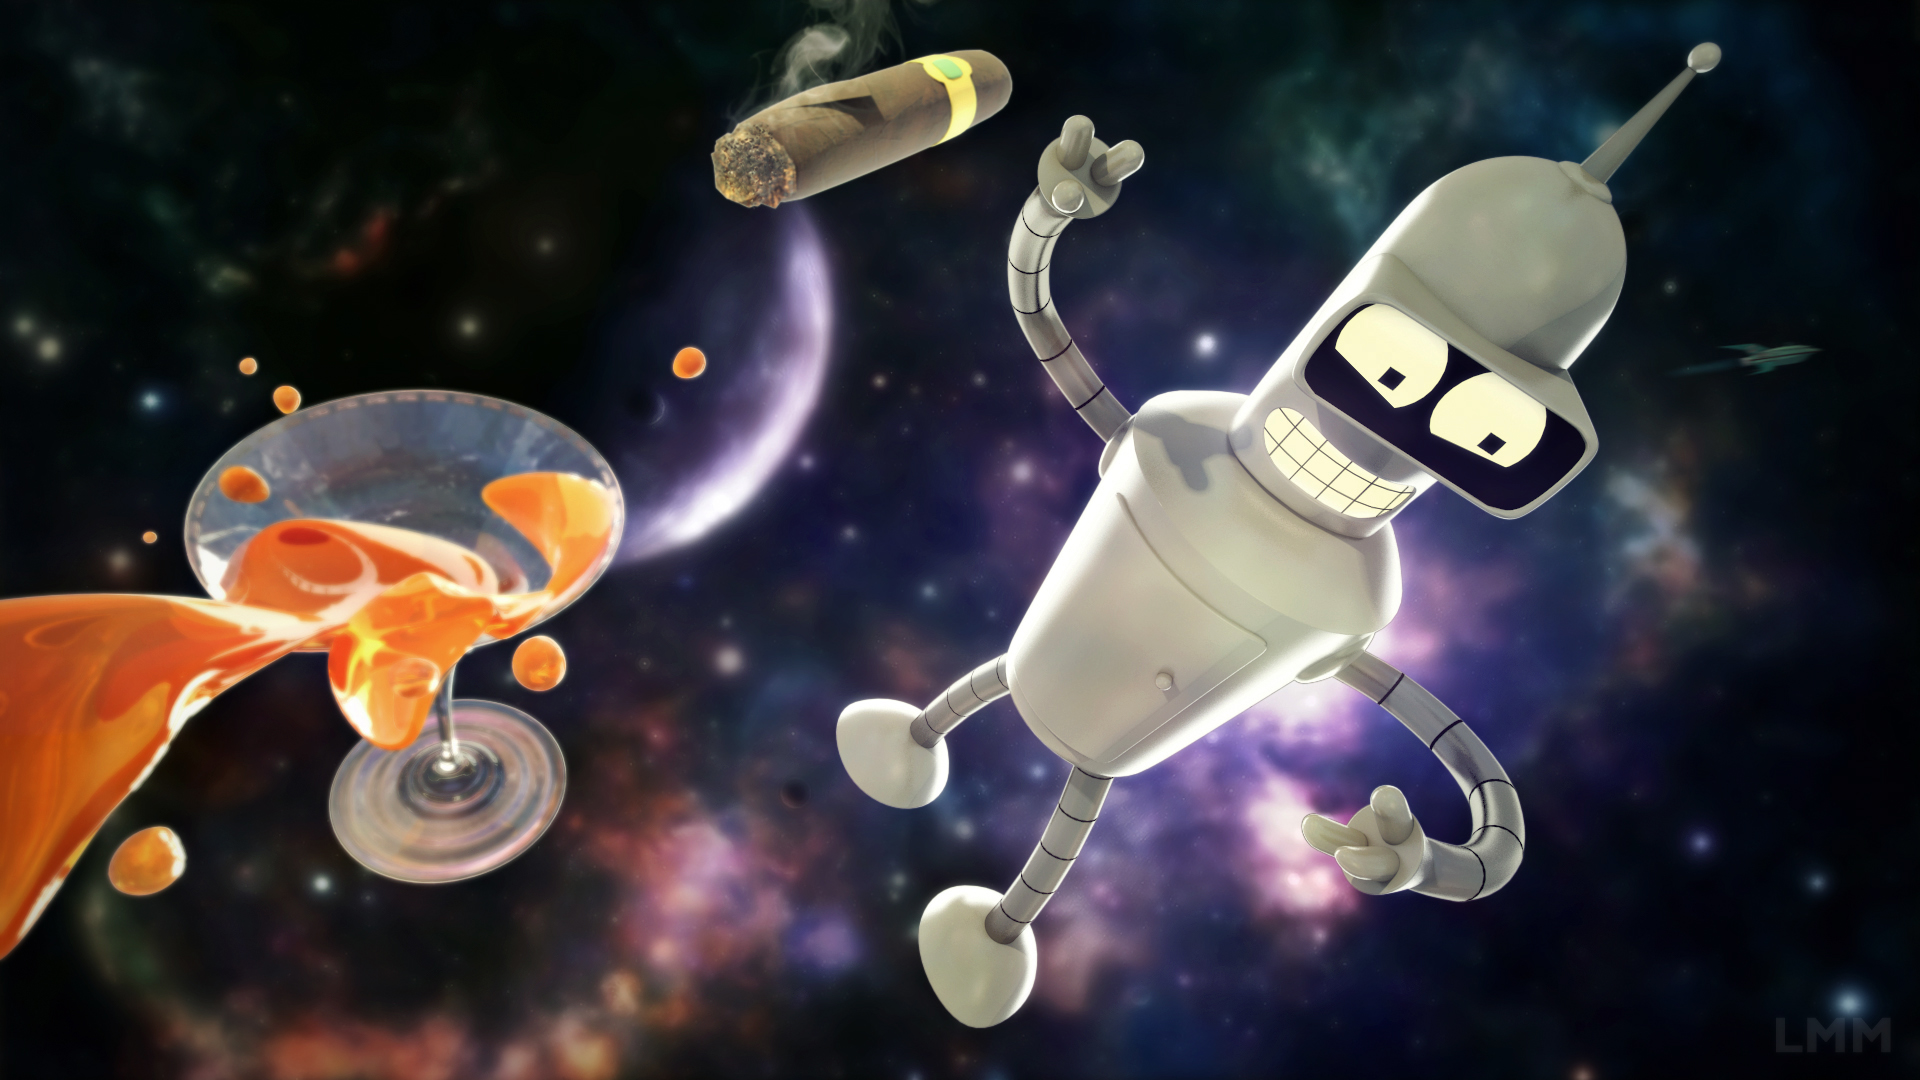 download lost in space wallpaper which is under the space wallpapers 1920x1080